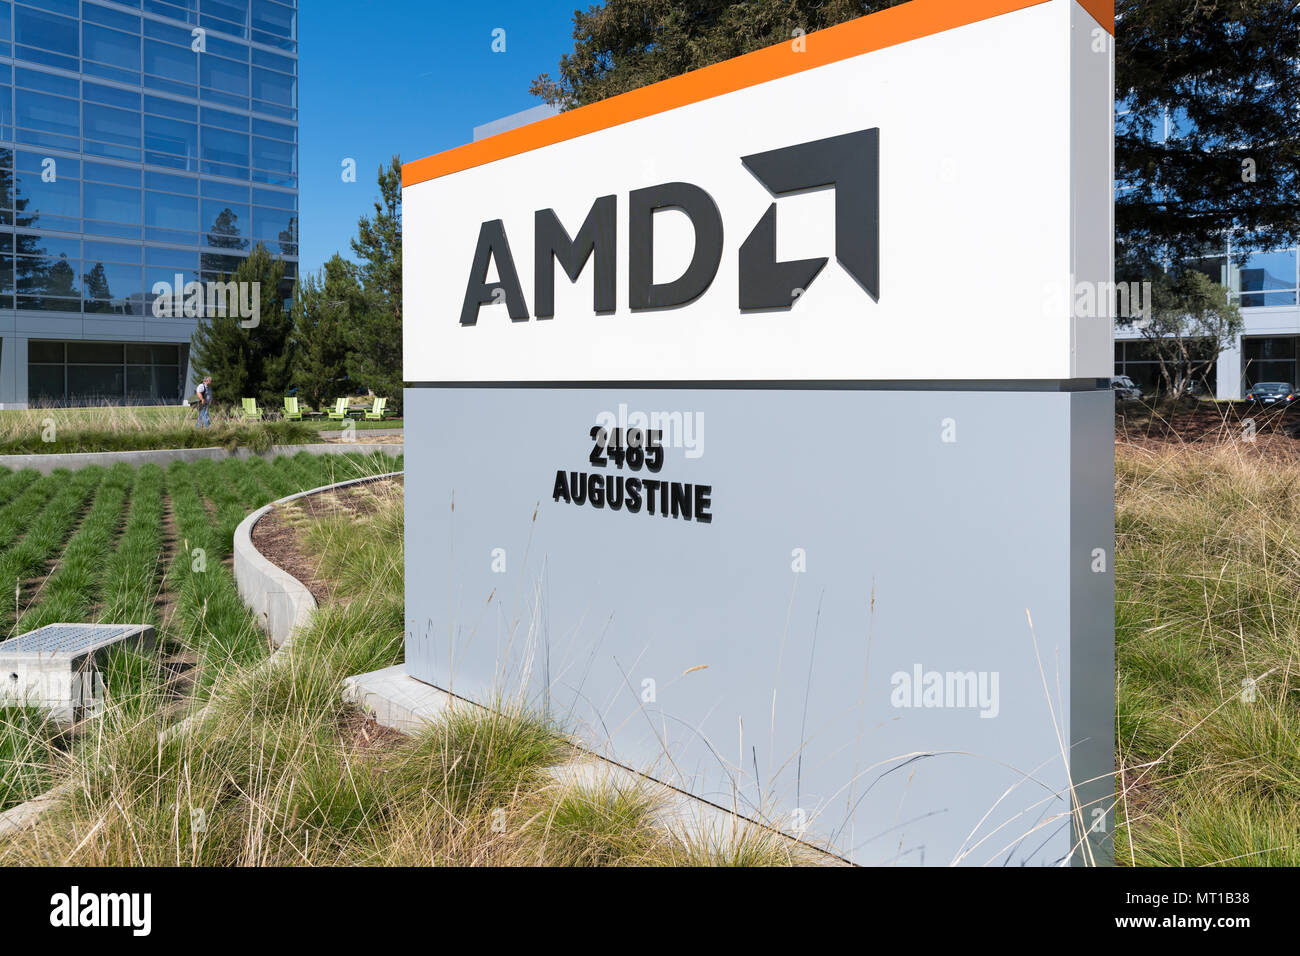 Santa Clara California April 26 2018 Amd Headquarters In Silicon Valley Amd Is An American Semiconductor Company That Develops Computer Process Stock Photo Alamy